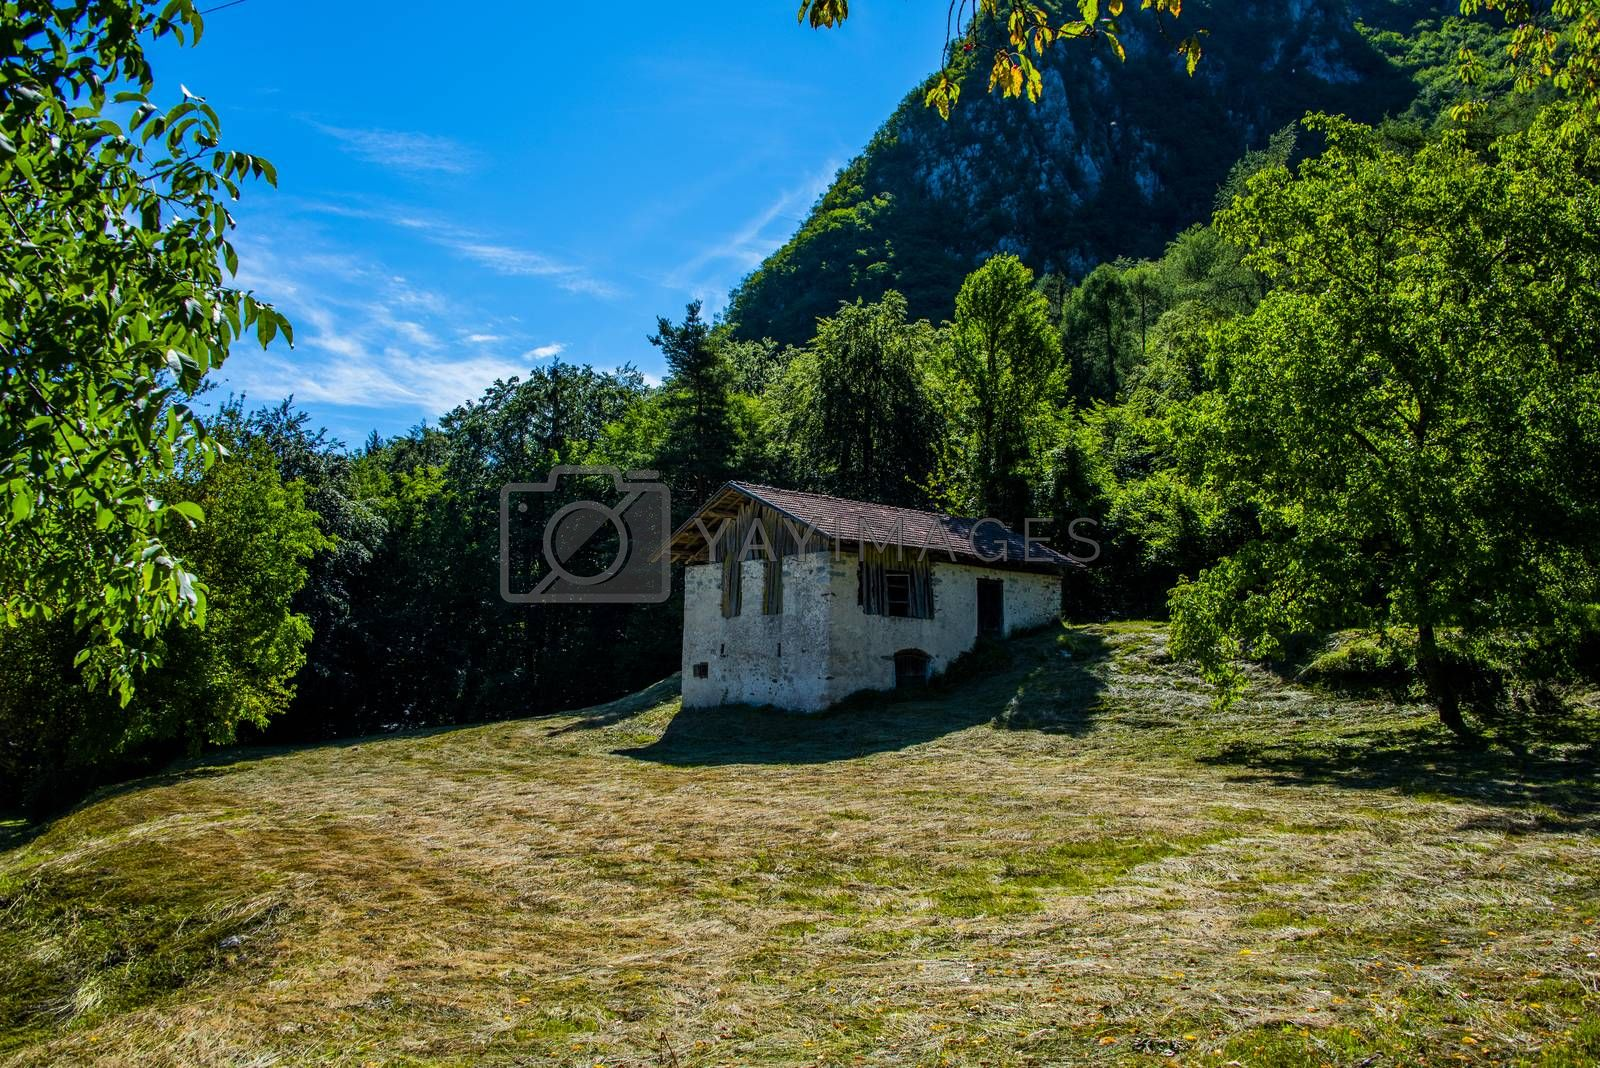 shed and lawn with cut grass one by AlviseZiche